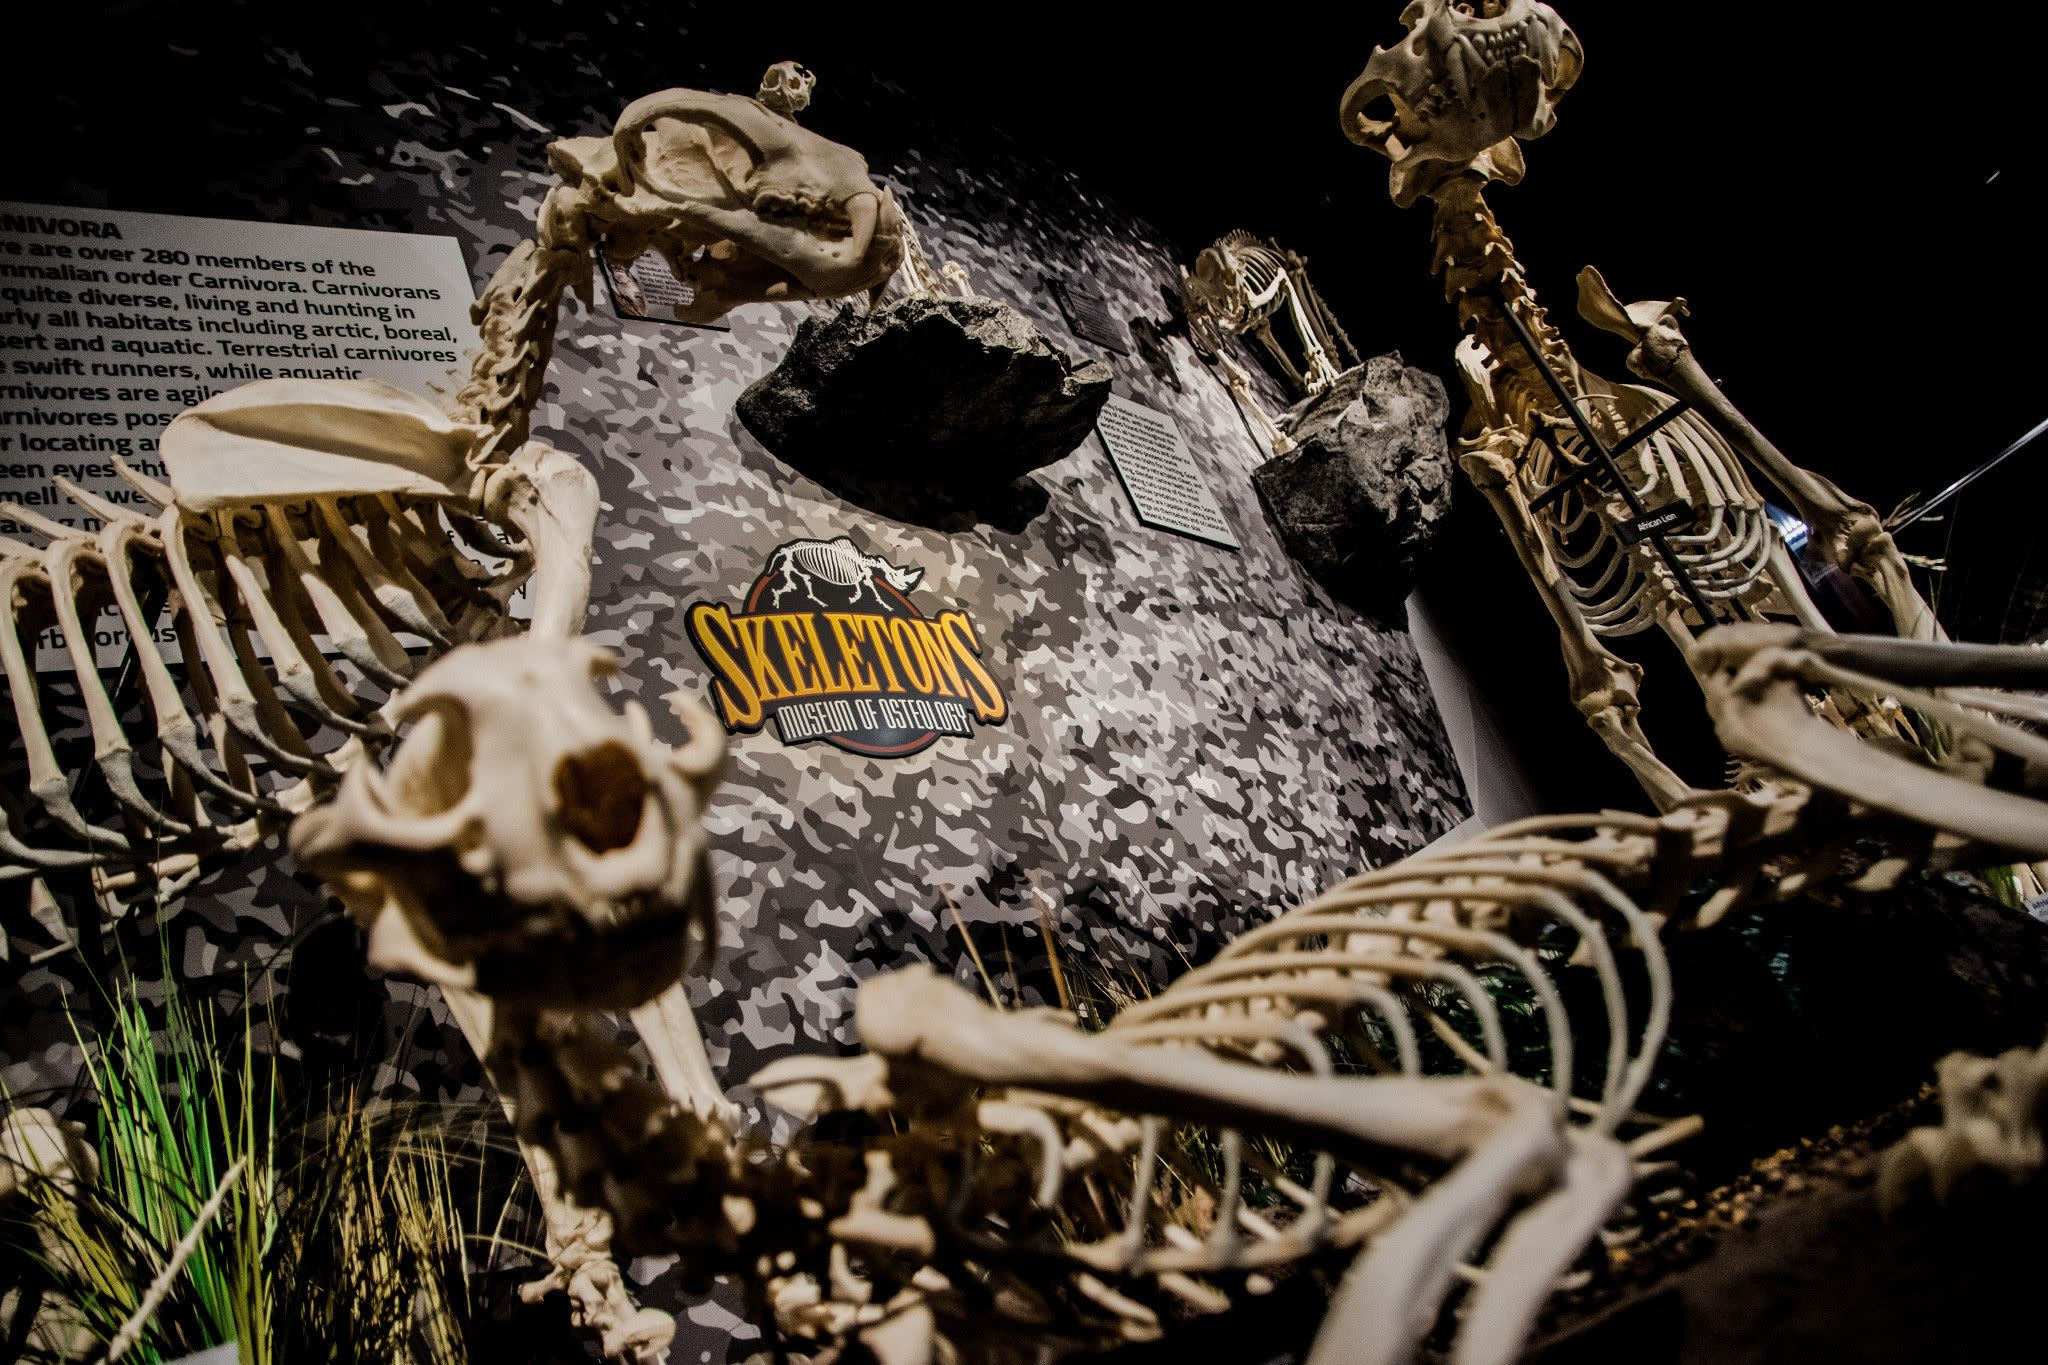 SKELETONS: Museum of Osteology in Orlando